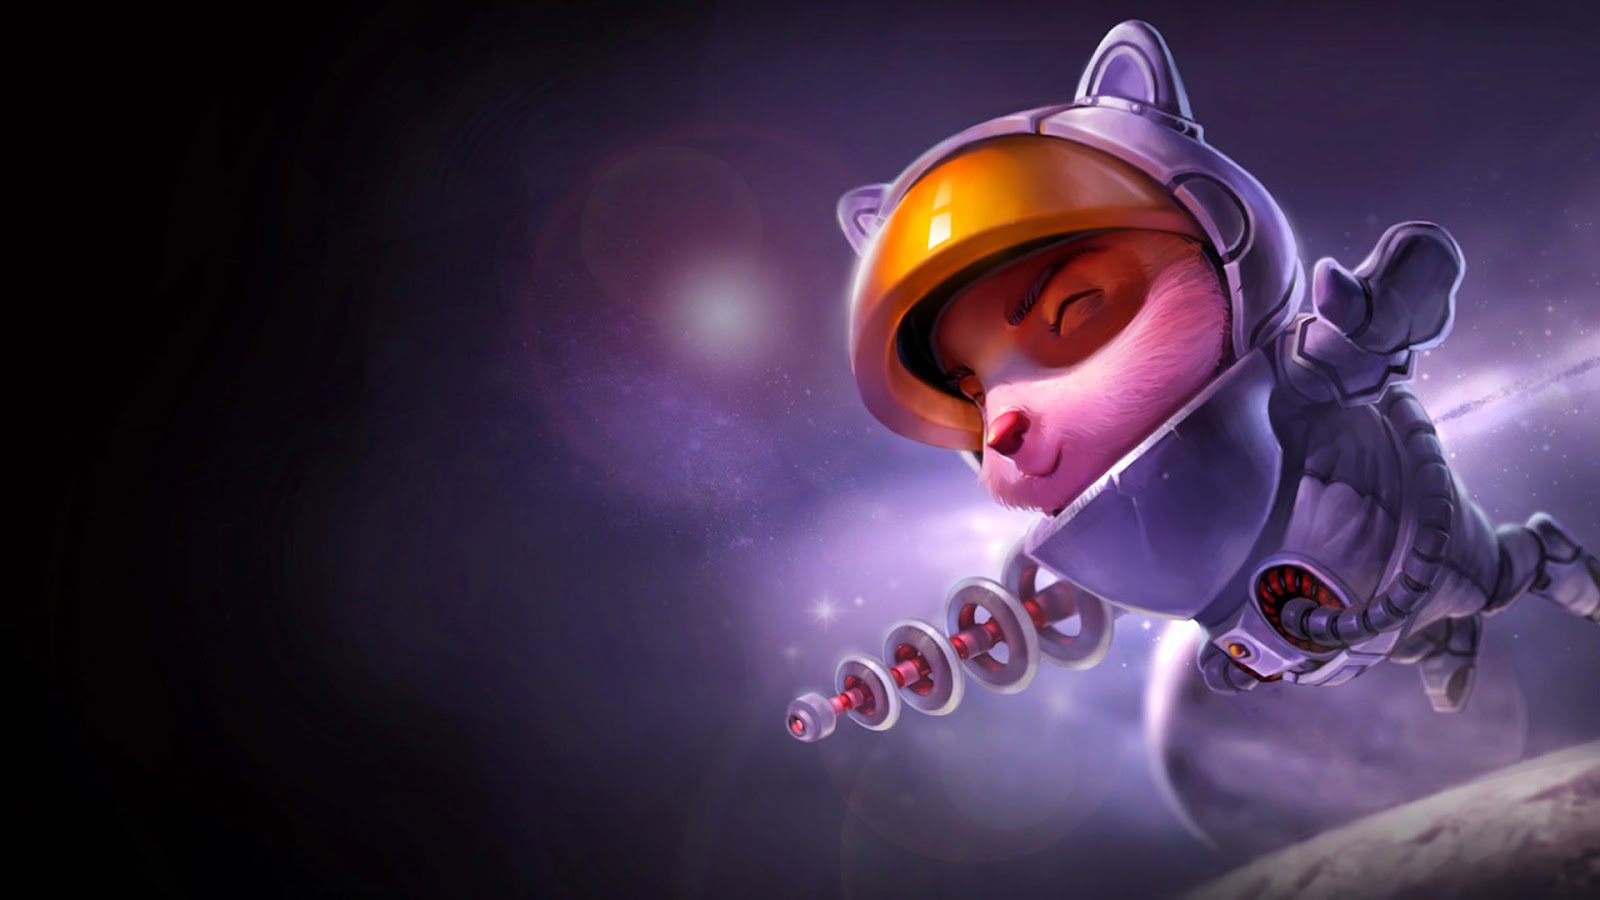 teemo wallpaper - photo #8